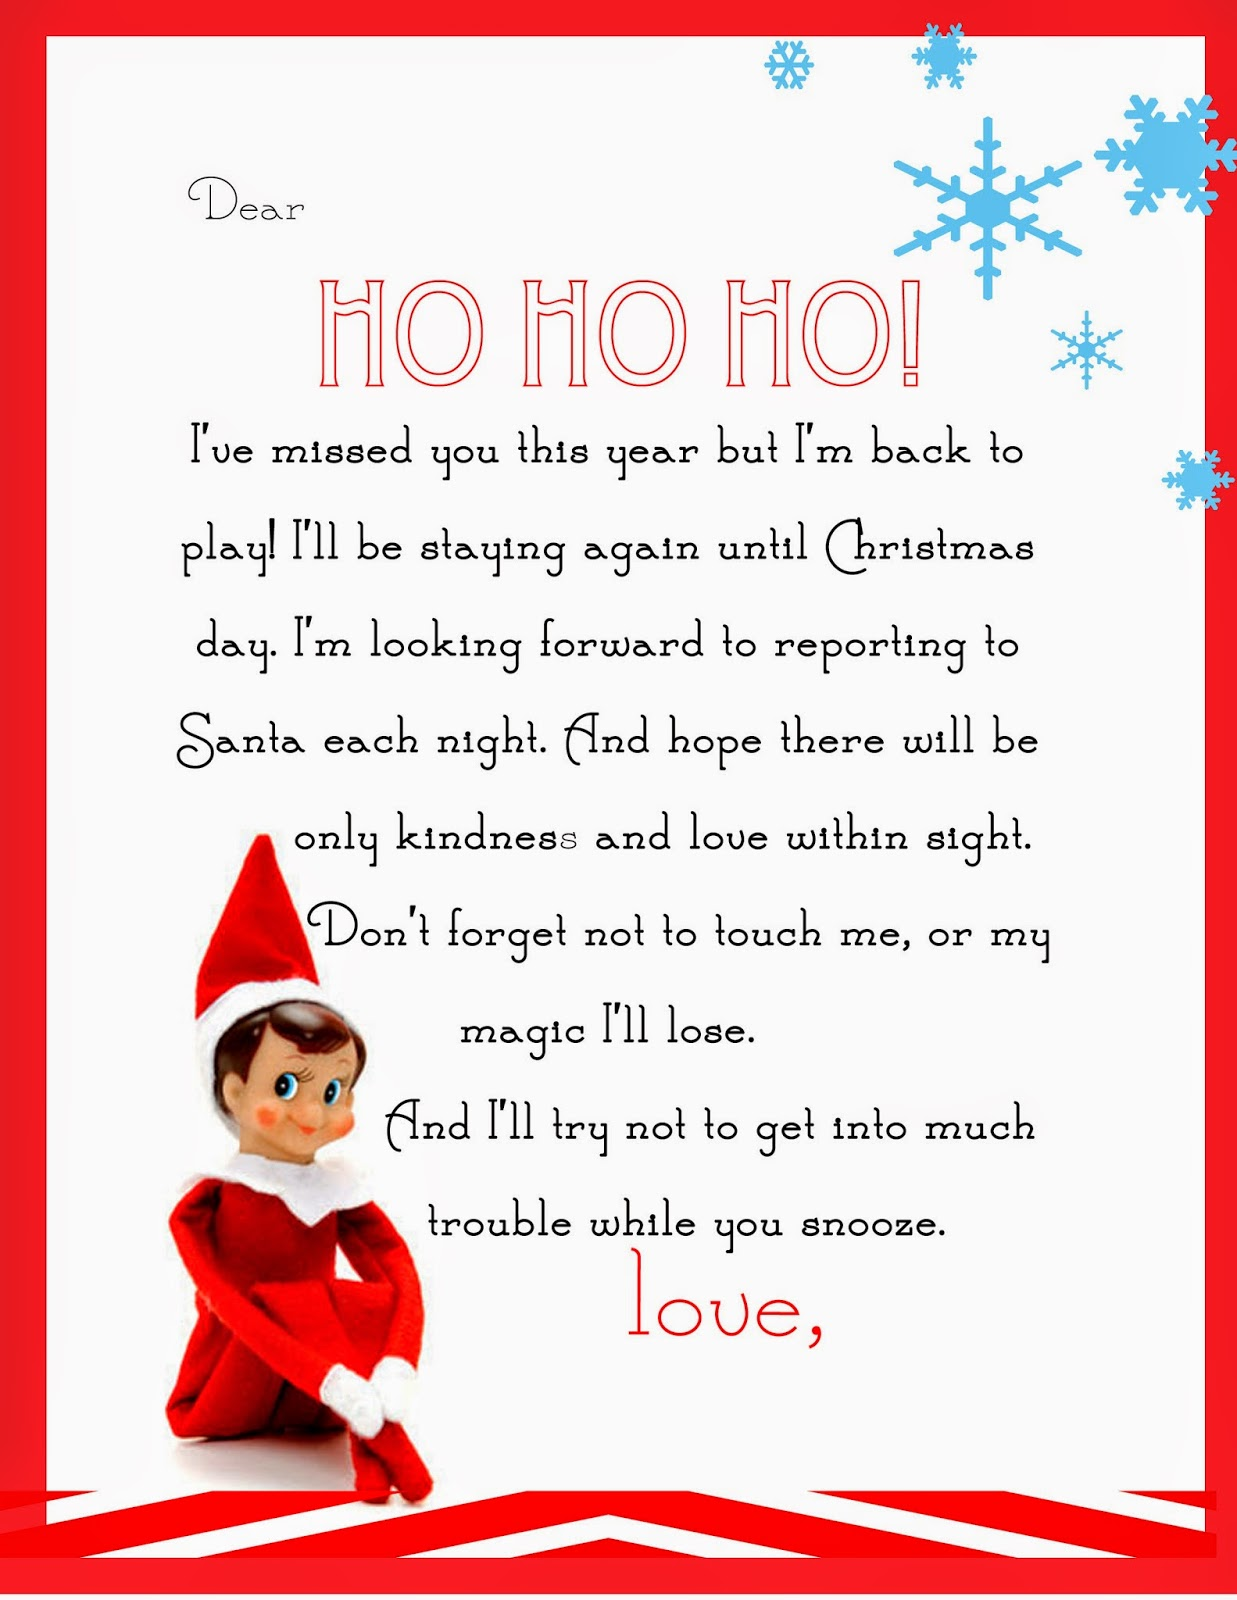 Elf on the shelf letter free printable from Yummy Mummy Kitchen || Letters from Santa Holiday Blog